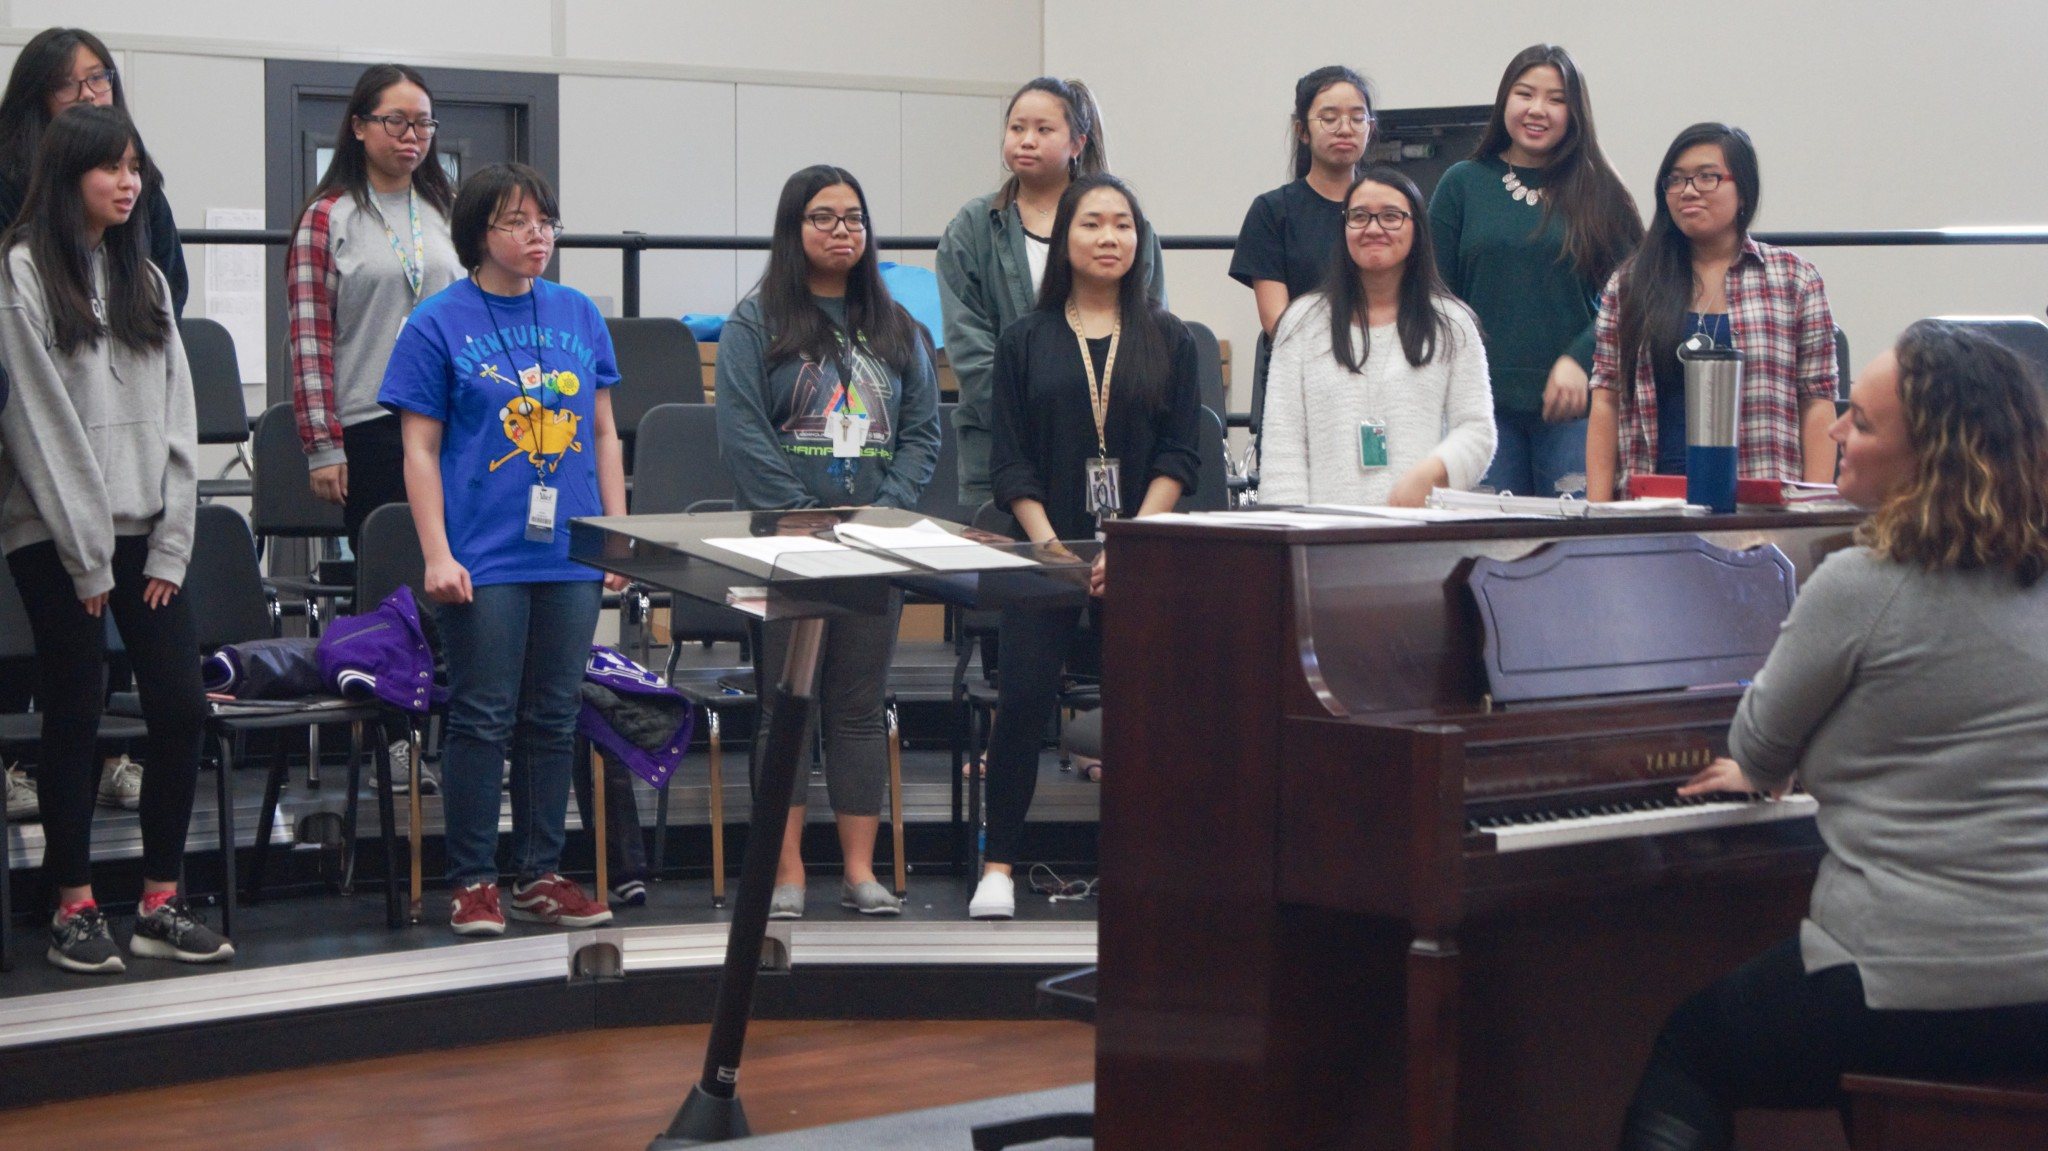 Ms. Winslow is working with her students to practice for their UIL songs Hello Girls by Pfaustch, Tota Pulchra Es by Durufle, and The Lake Isle of Innisfree by Daley.